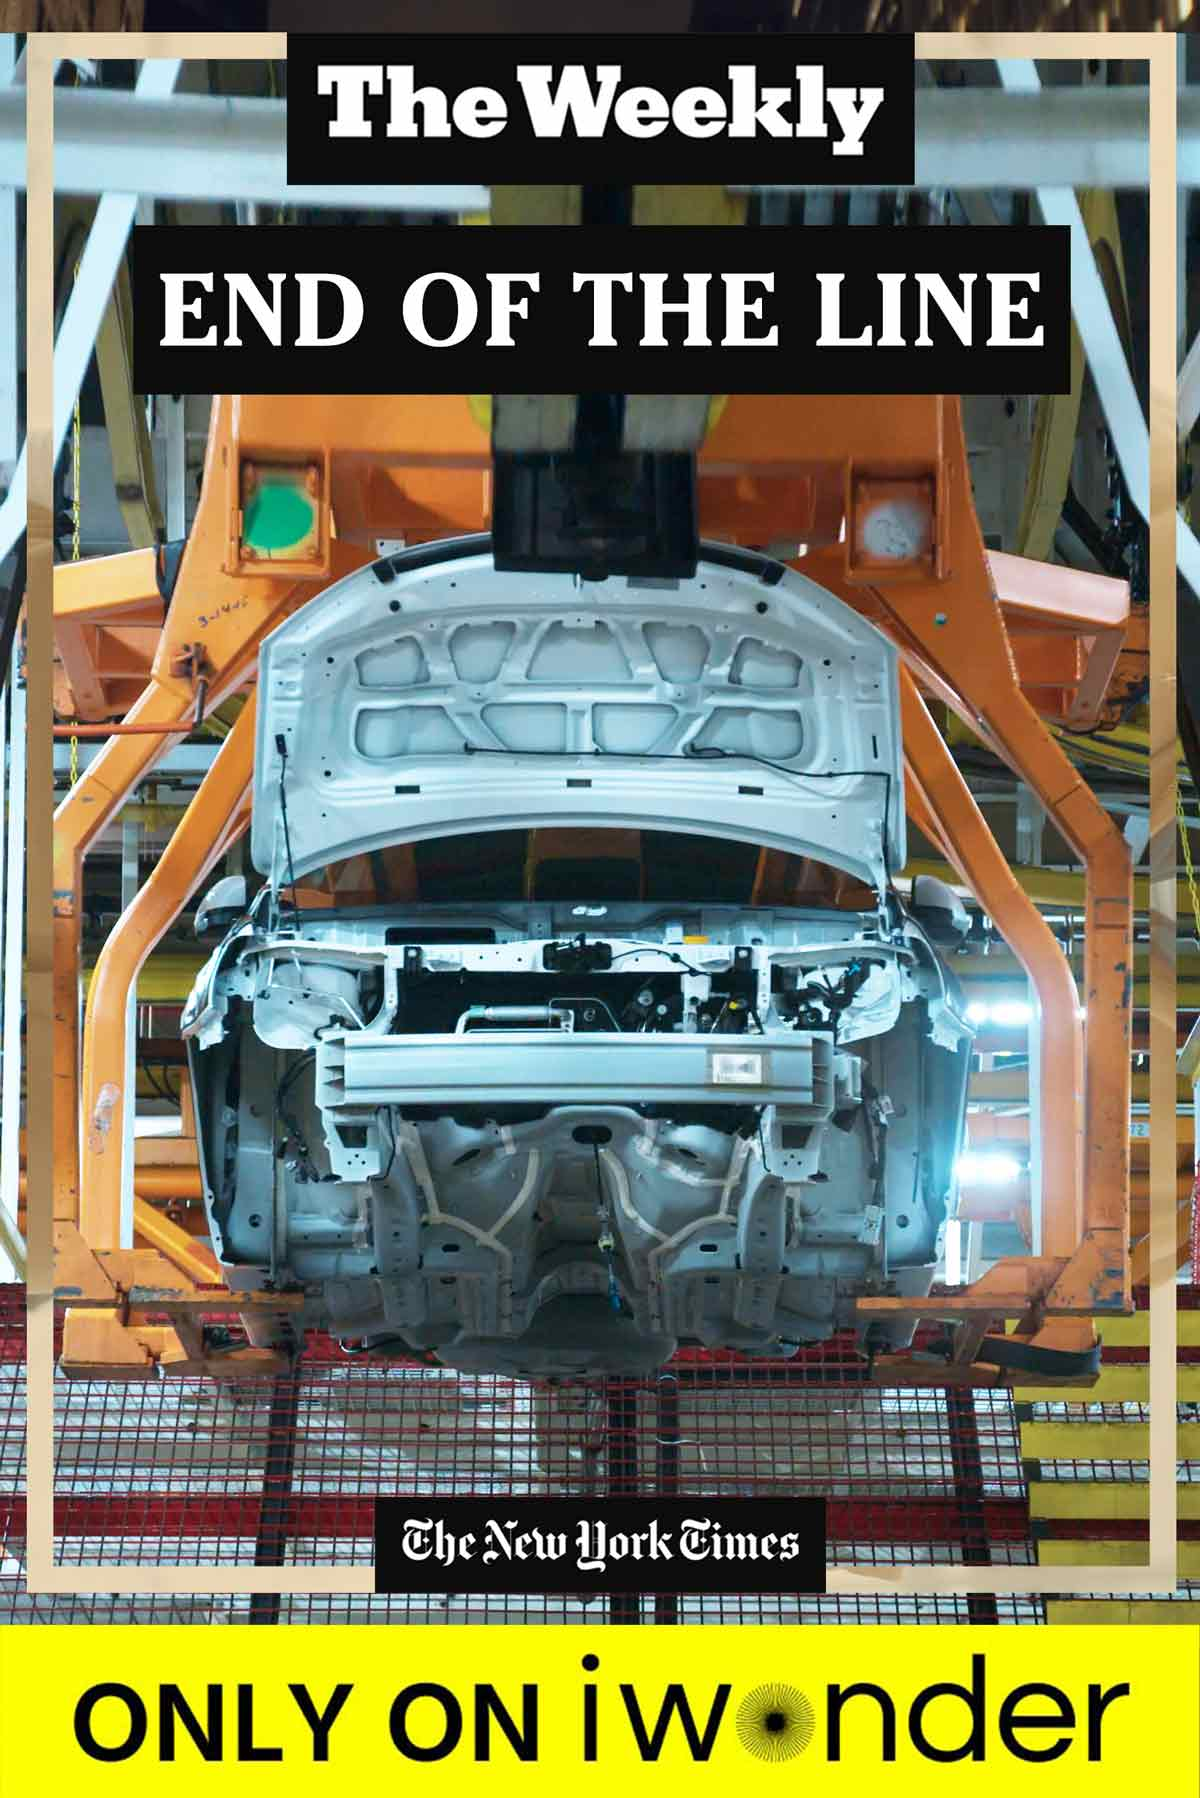 The Weekly: The End of the Line